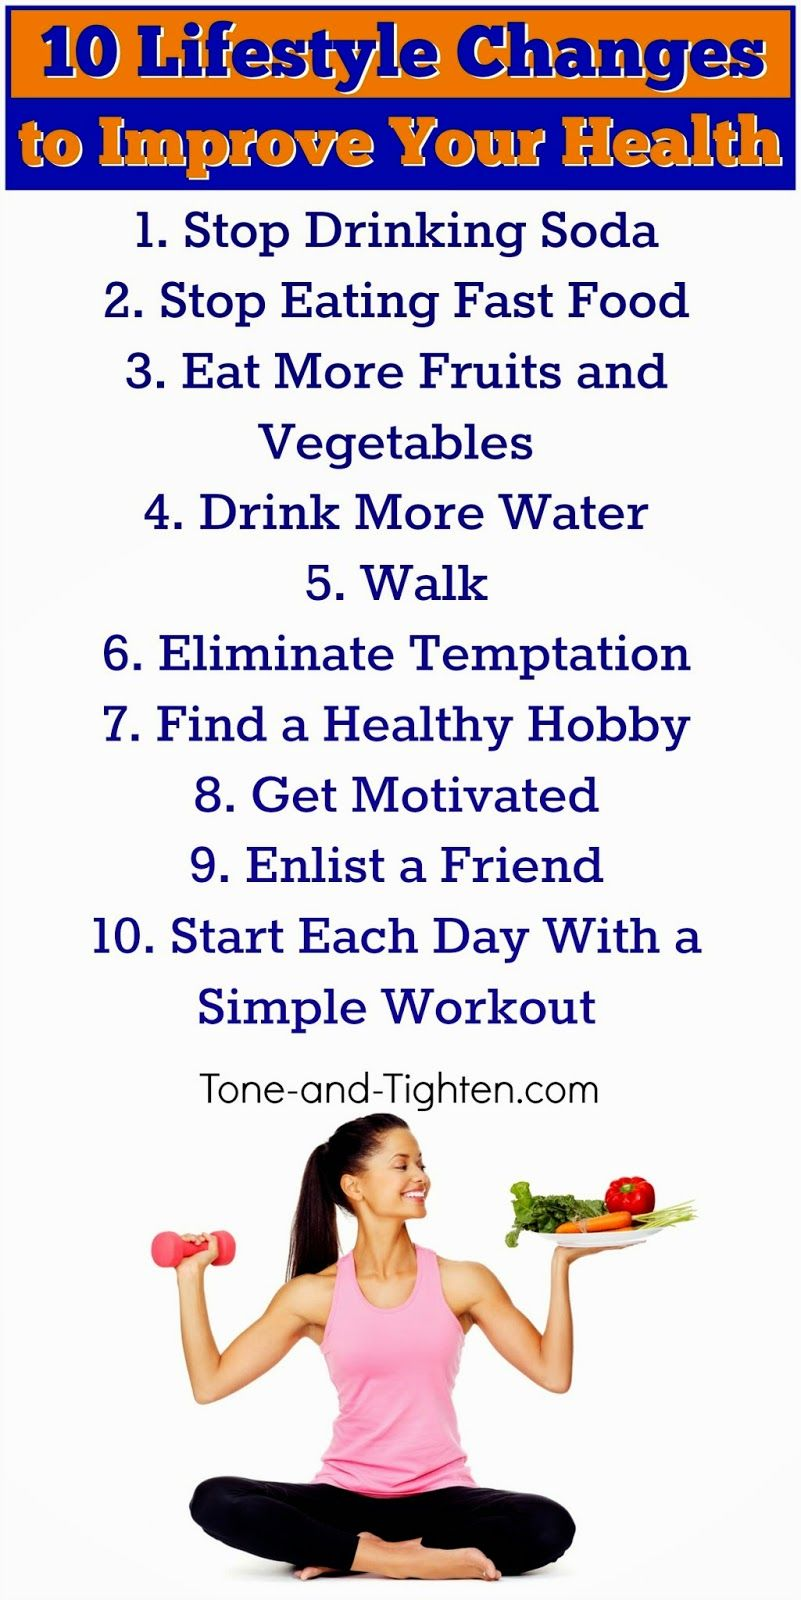 10 easy lifestyle changes to help you improve your health ...